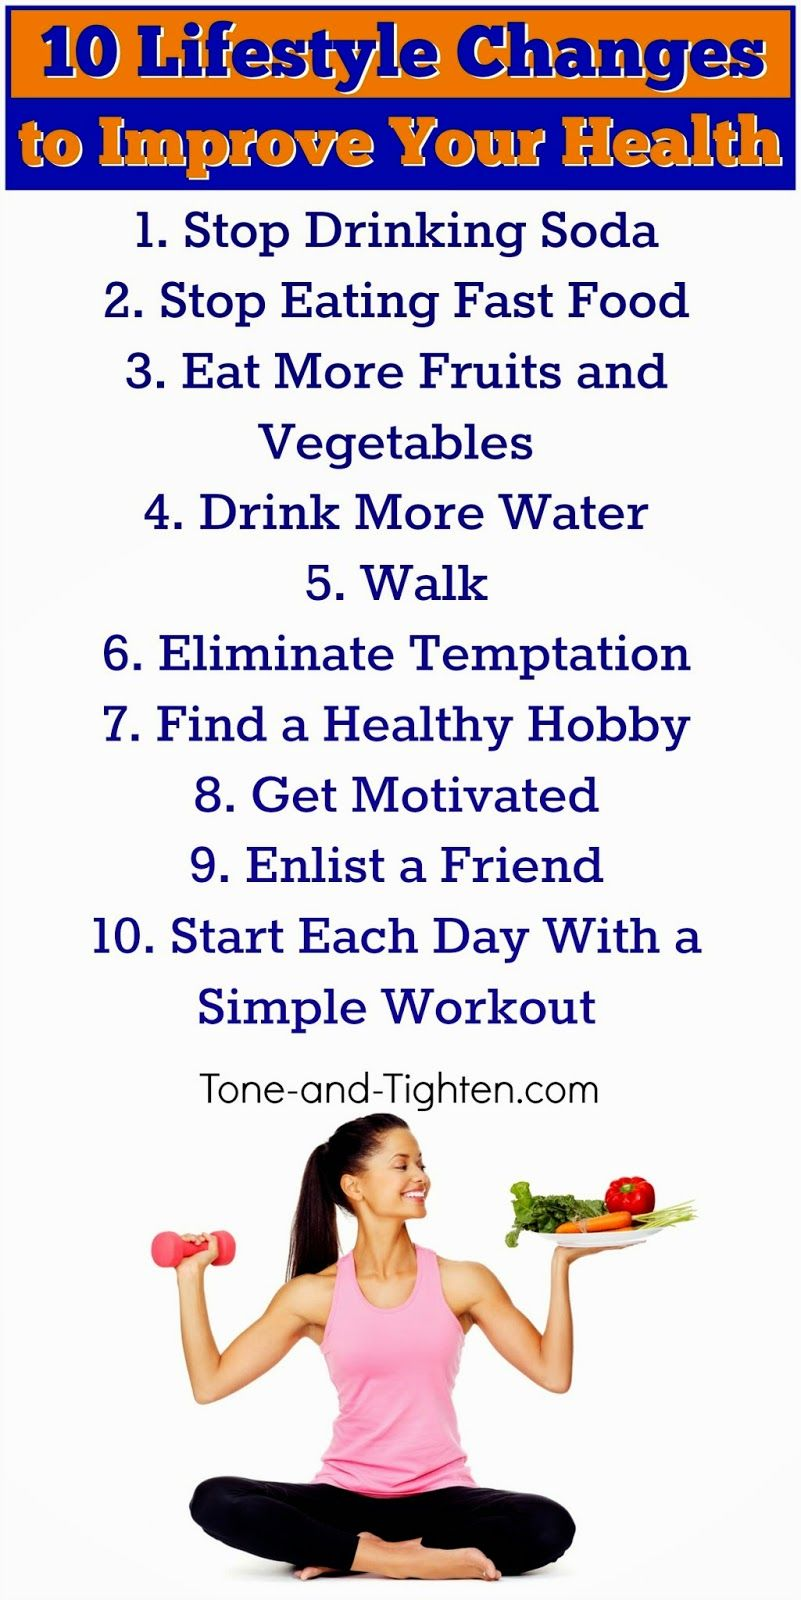 10 easy lifestyle changes to help you improve your health ...